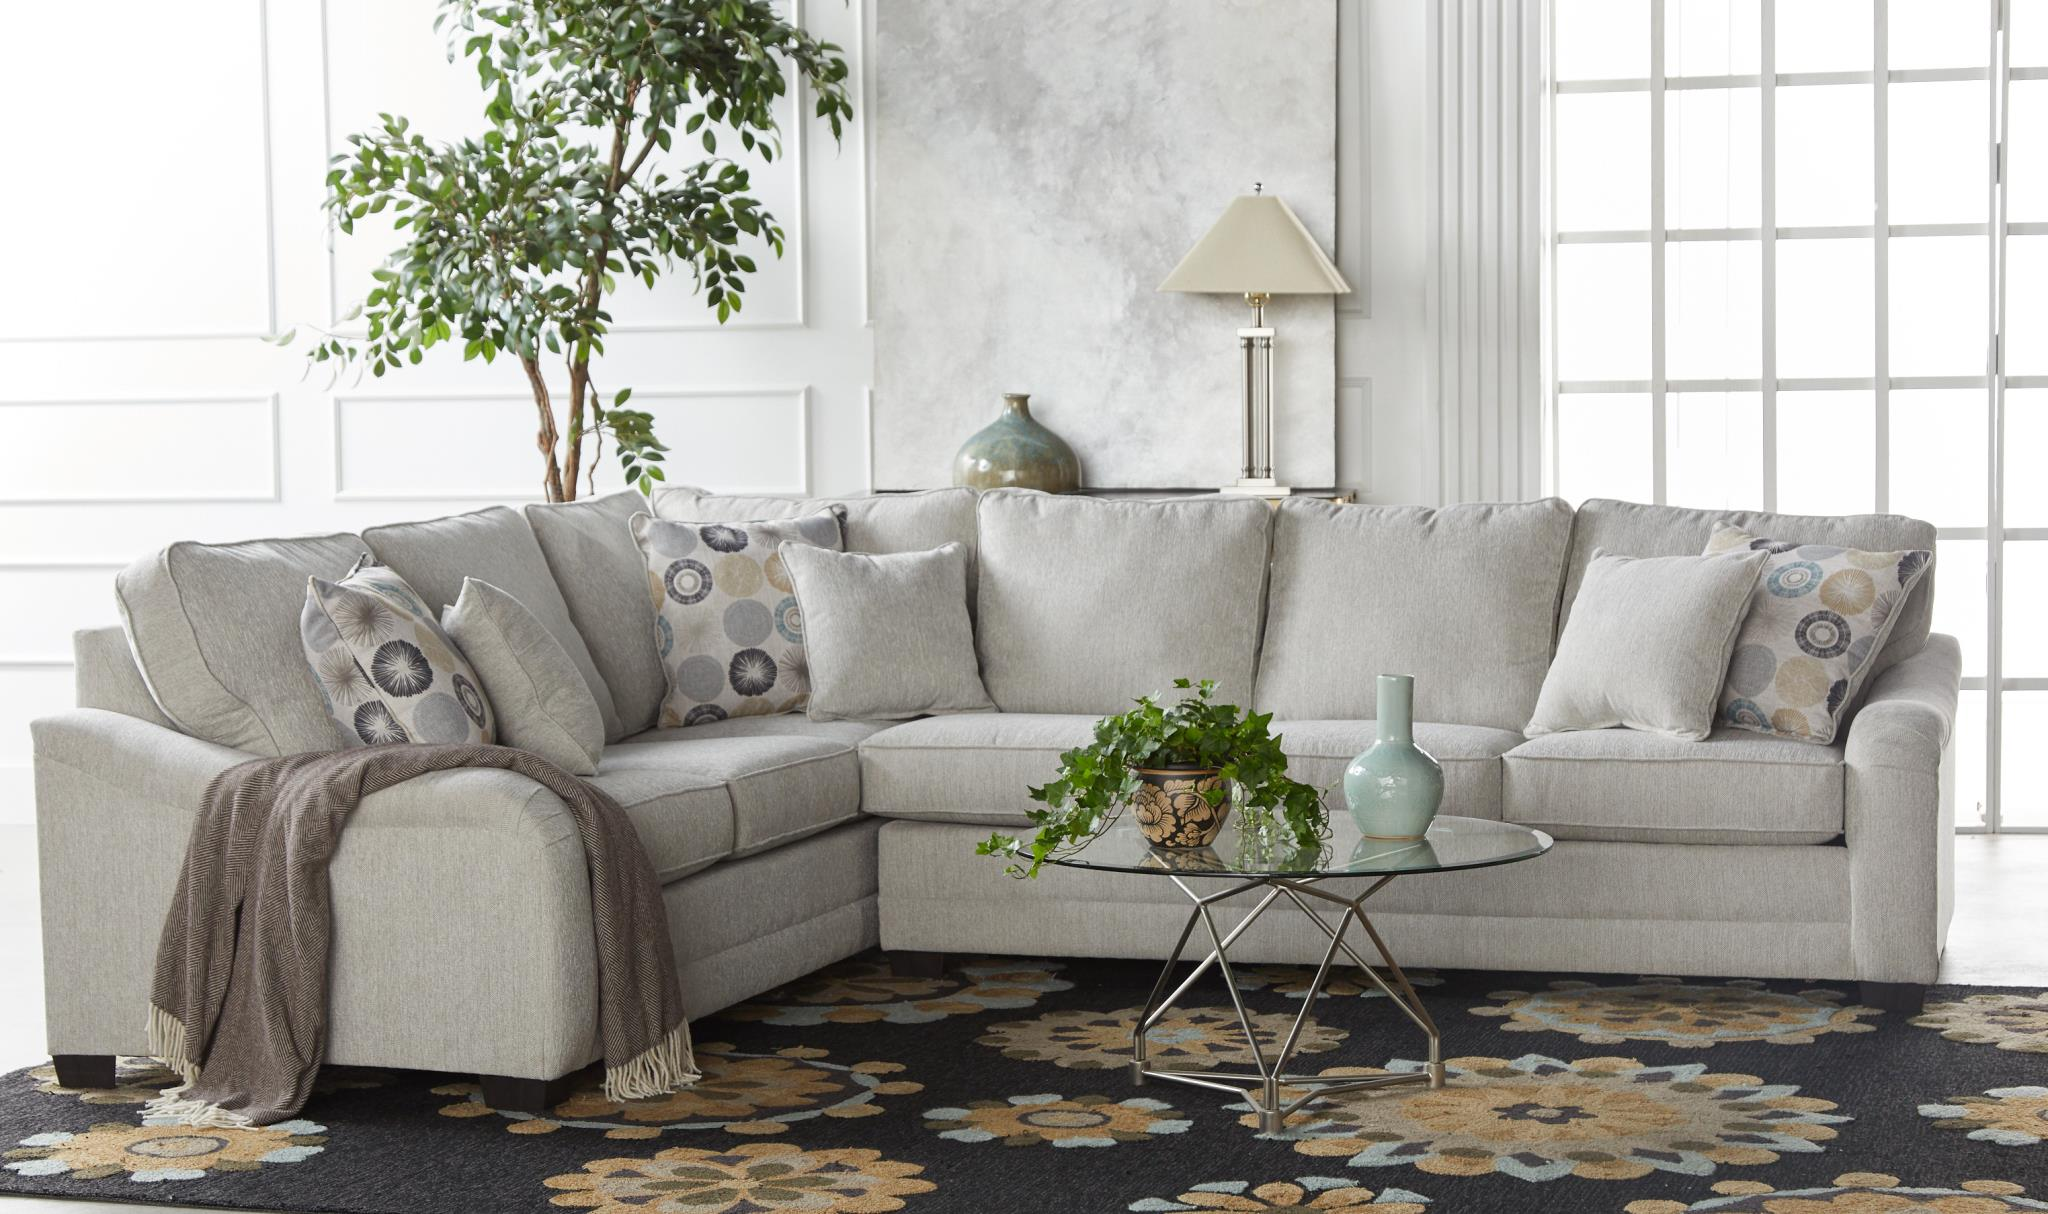 Linen and Coral Corner Sectional